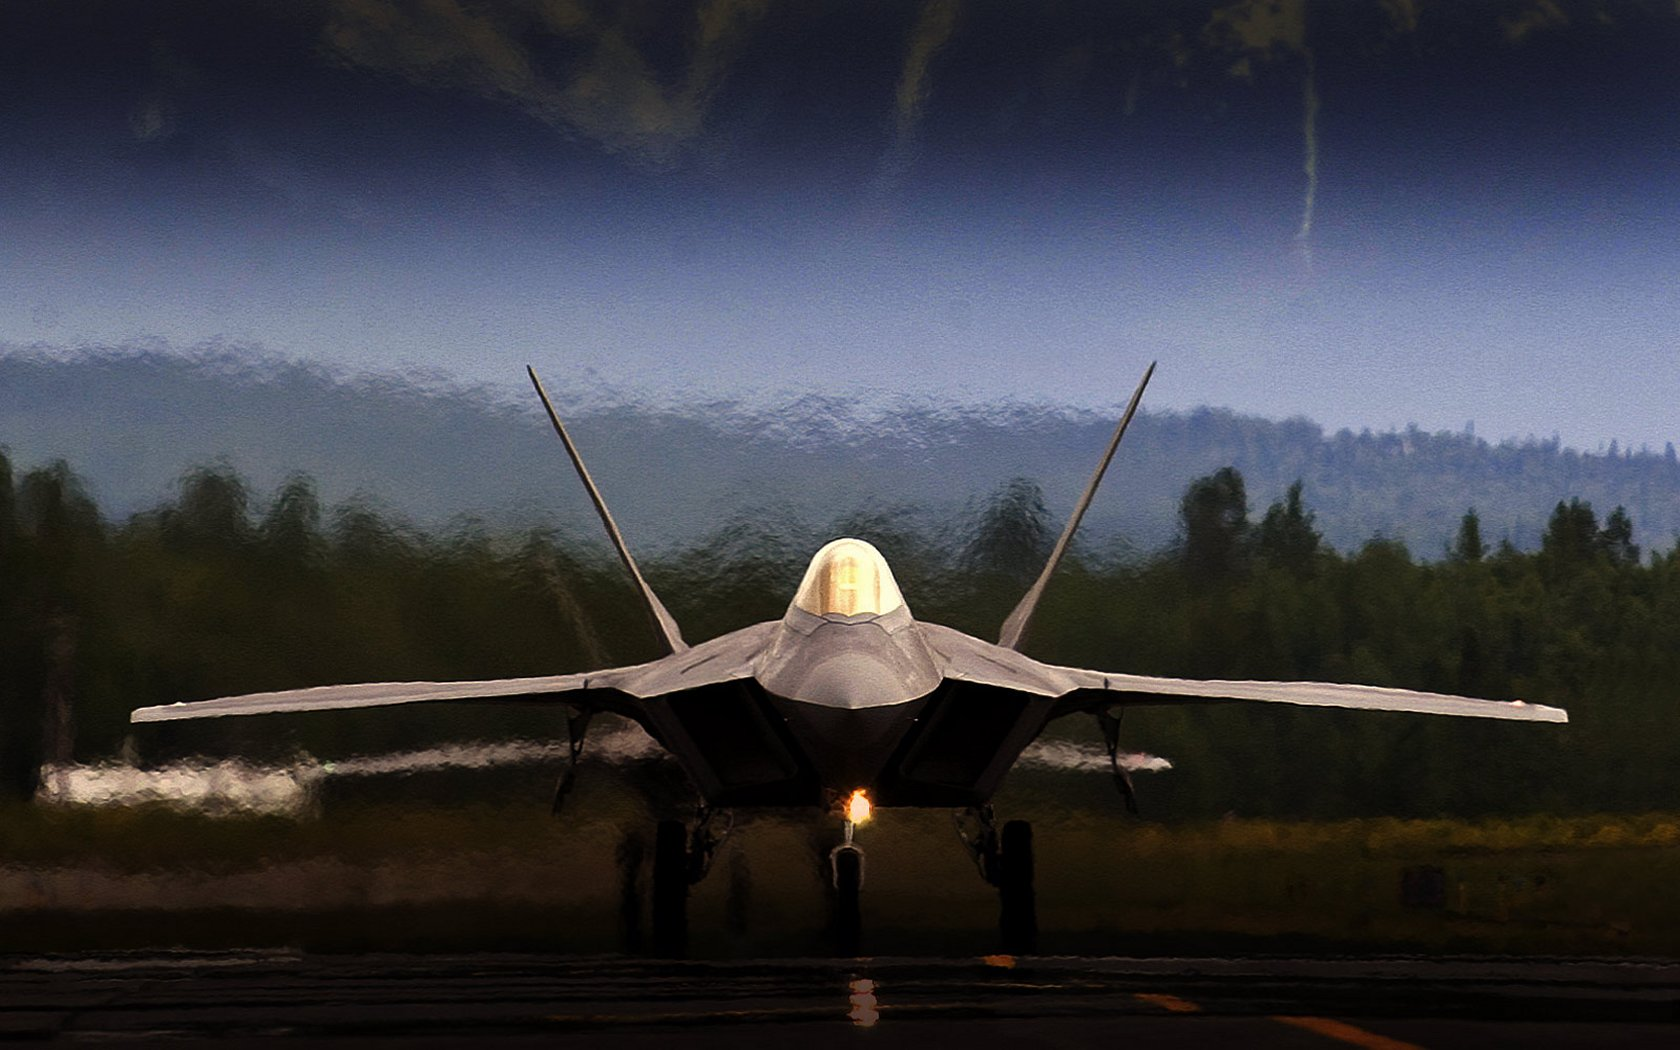 Aircrafts F 22 Wallpaper 1680x1050 Aircrafts F22 Raptor F35 1680x1050